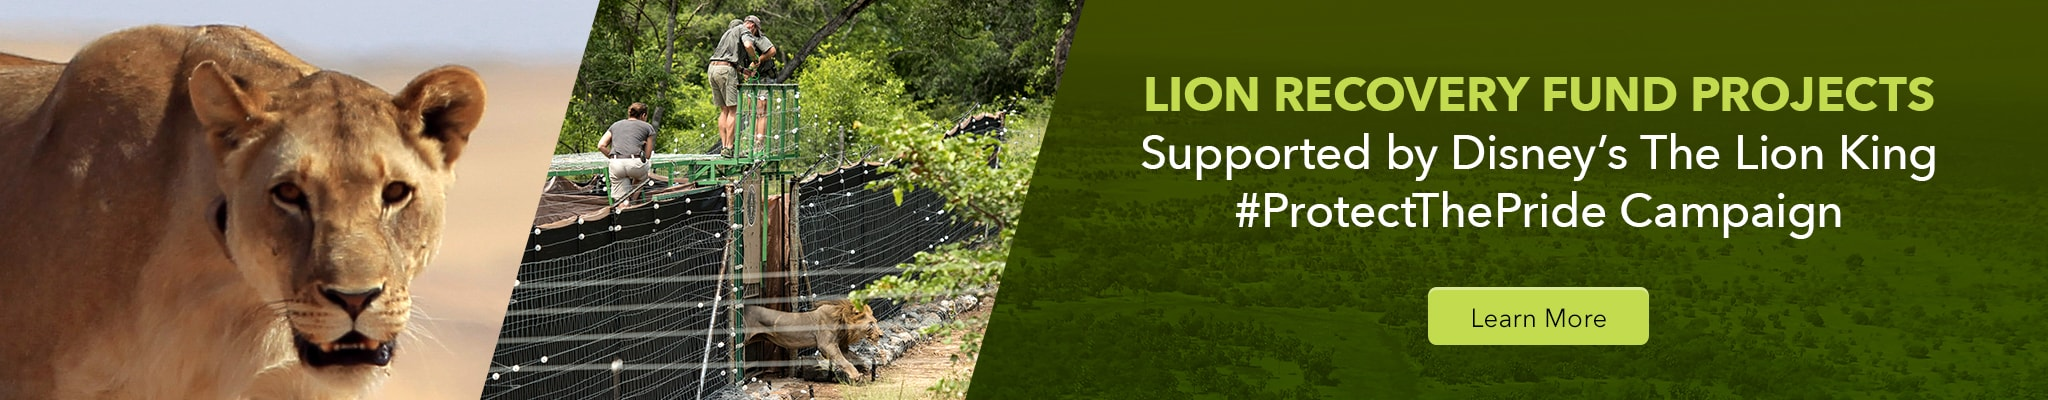 Lion Recovery Fund Projects. Supported by Disney's The Lion King. #ProtectThePride Campaign